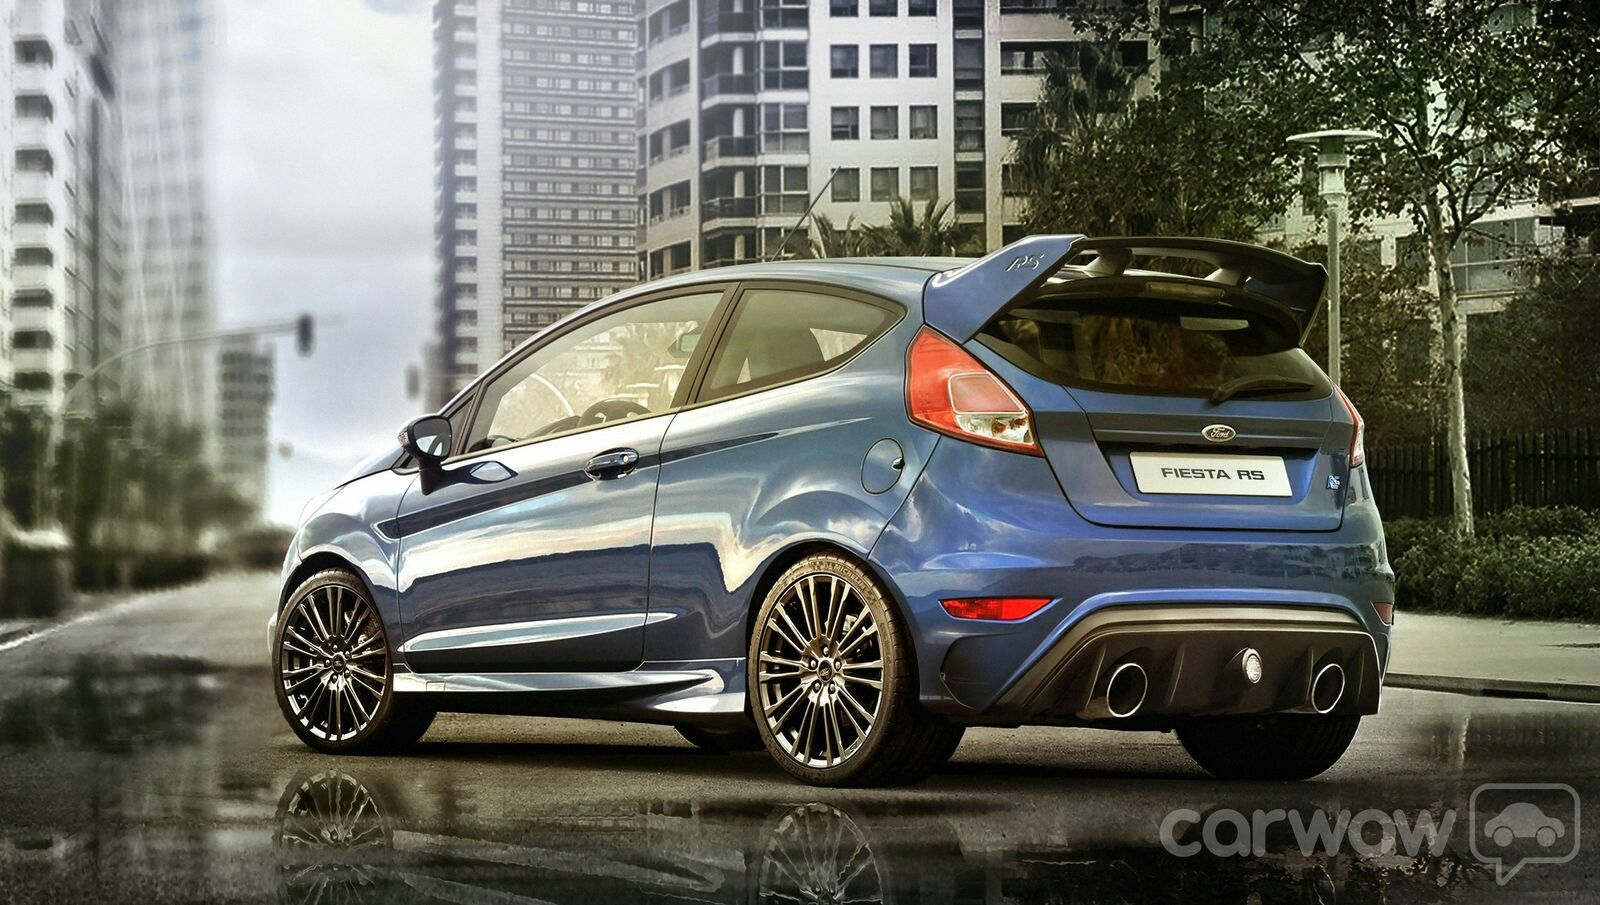 Ford fiesta rs we can only hope this becomes reality ford